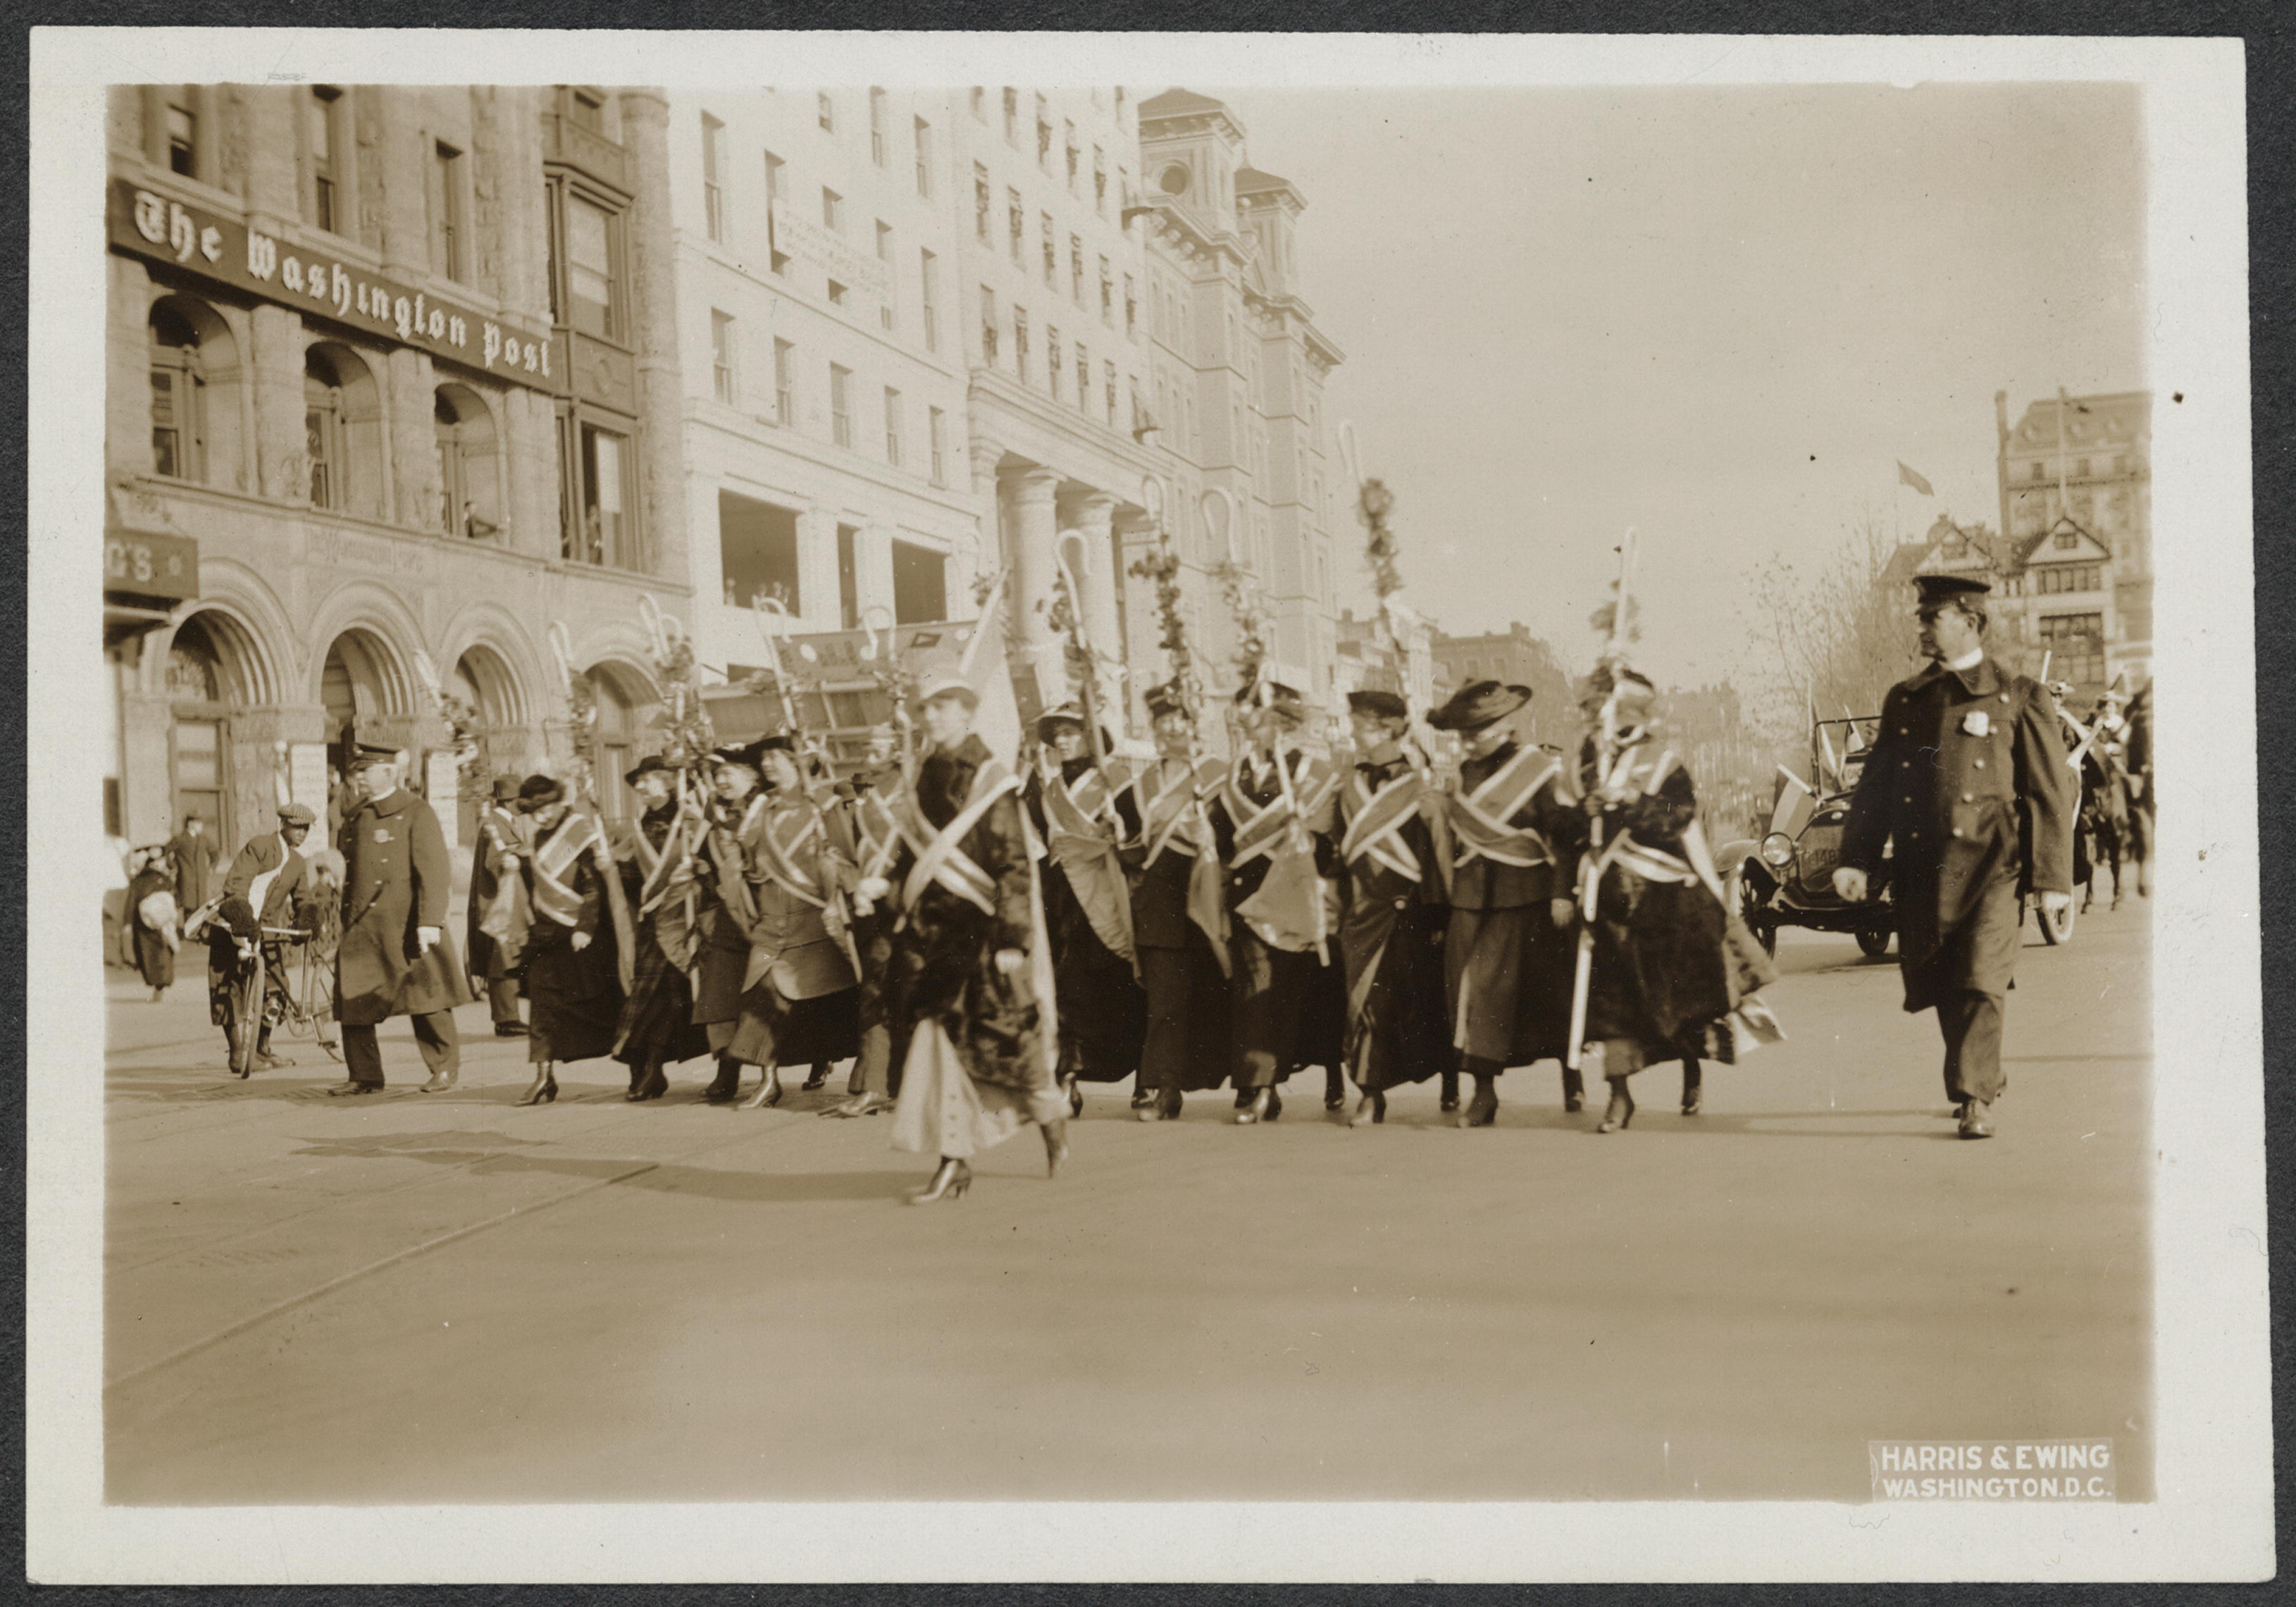 About this Item: Women marching in national suffrage demonstration in Washington, D.C., May 9, 1914.